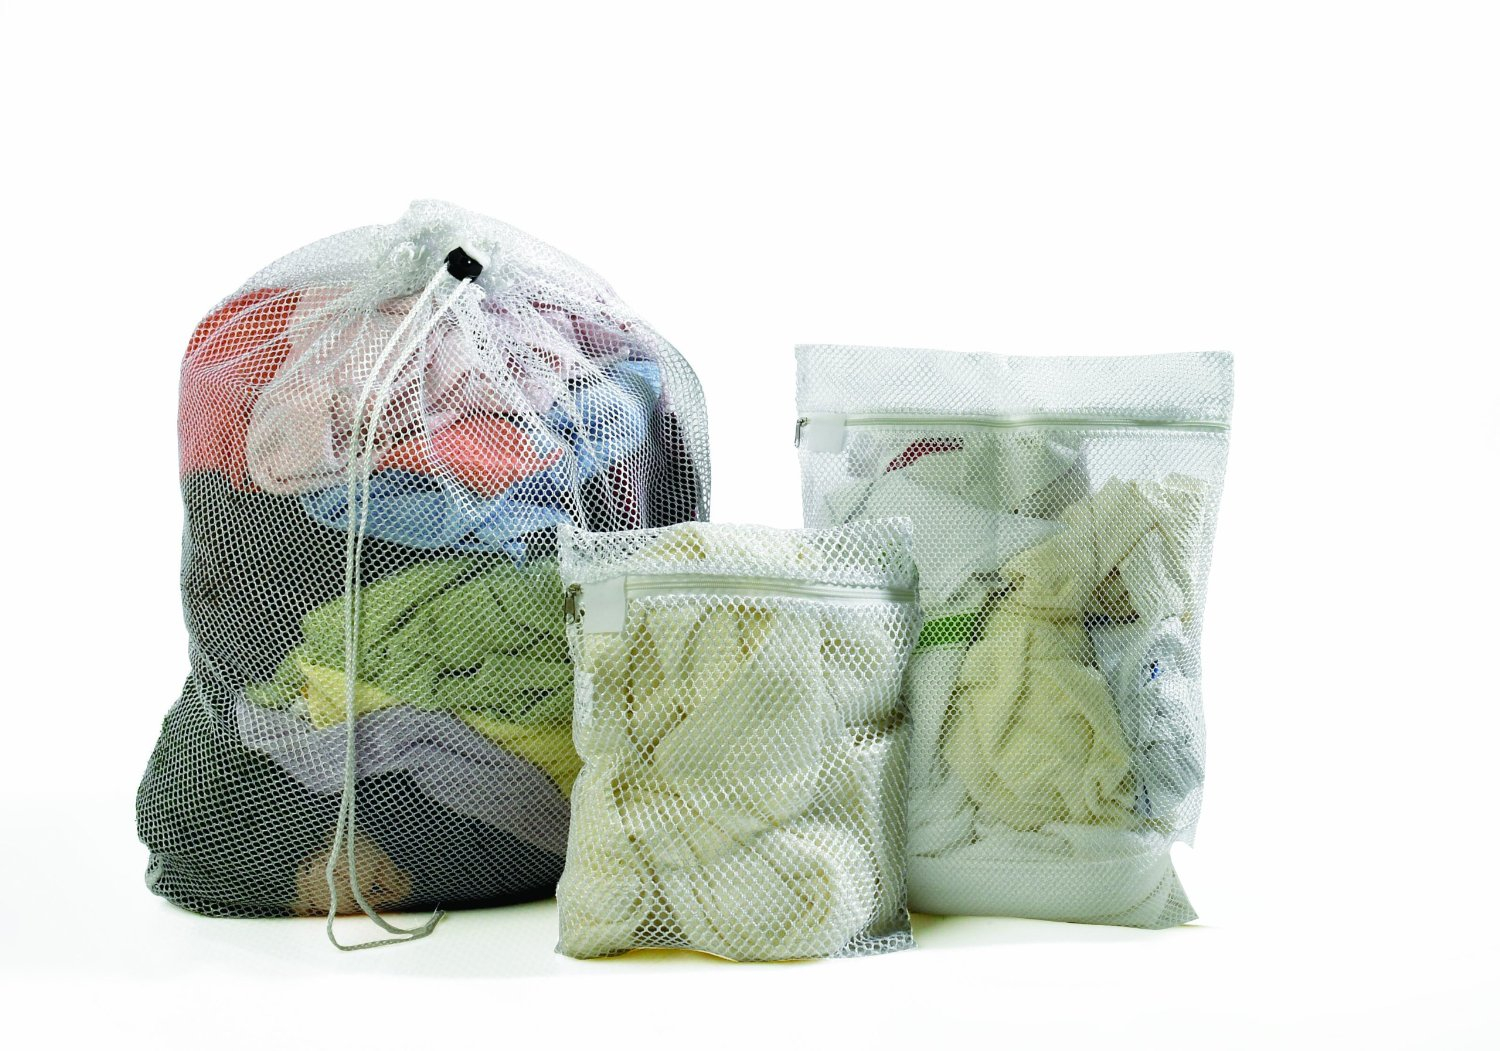 Mesh Laundry Bags With Drawstring - White